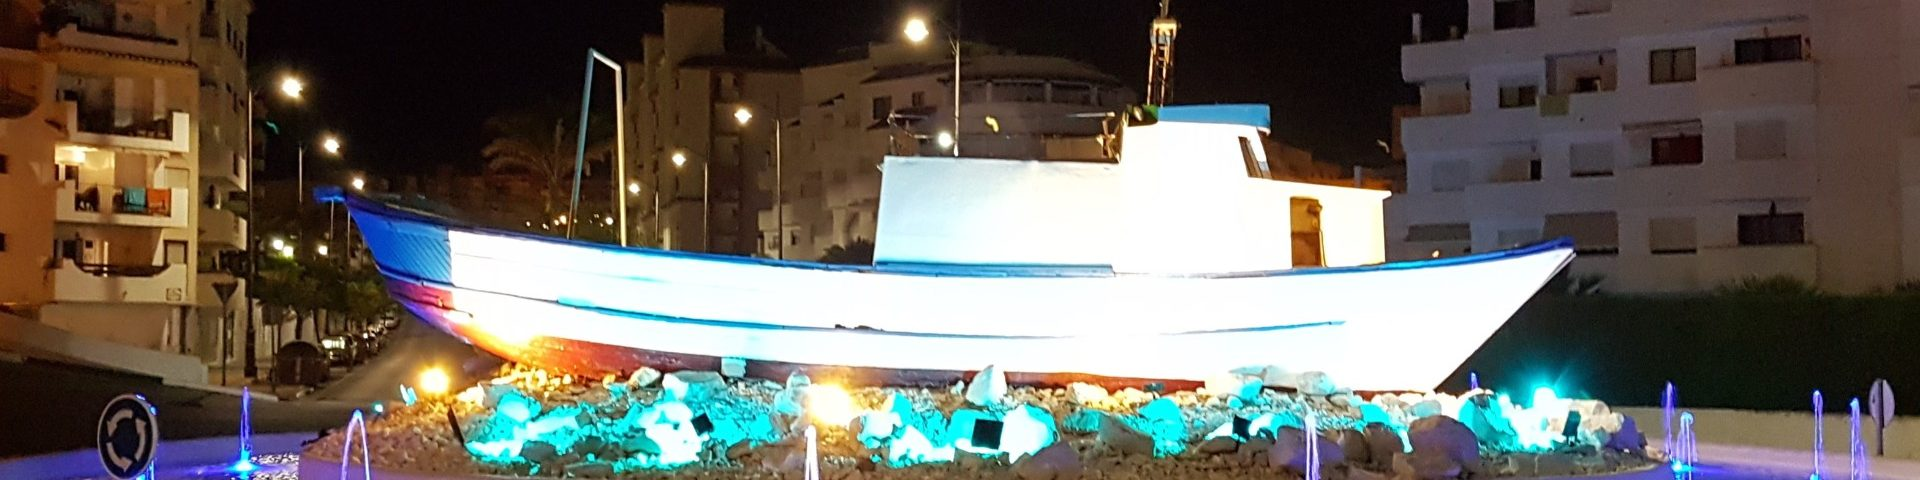 Roundabout at the entrance to Estepona Port with a boat in the centre